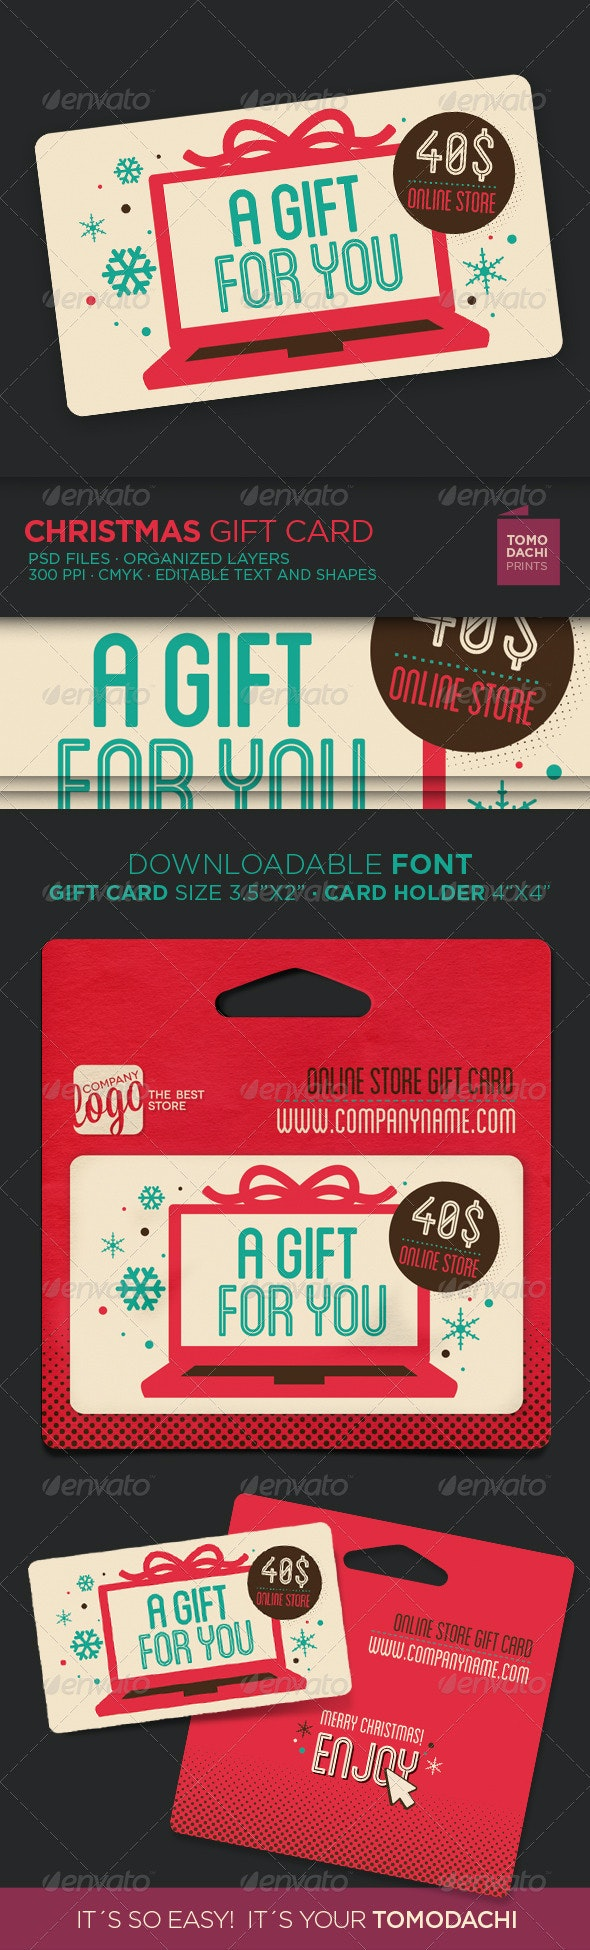 GIFT CARD xmas online store - Loyalty Cards Cards & Invites